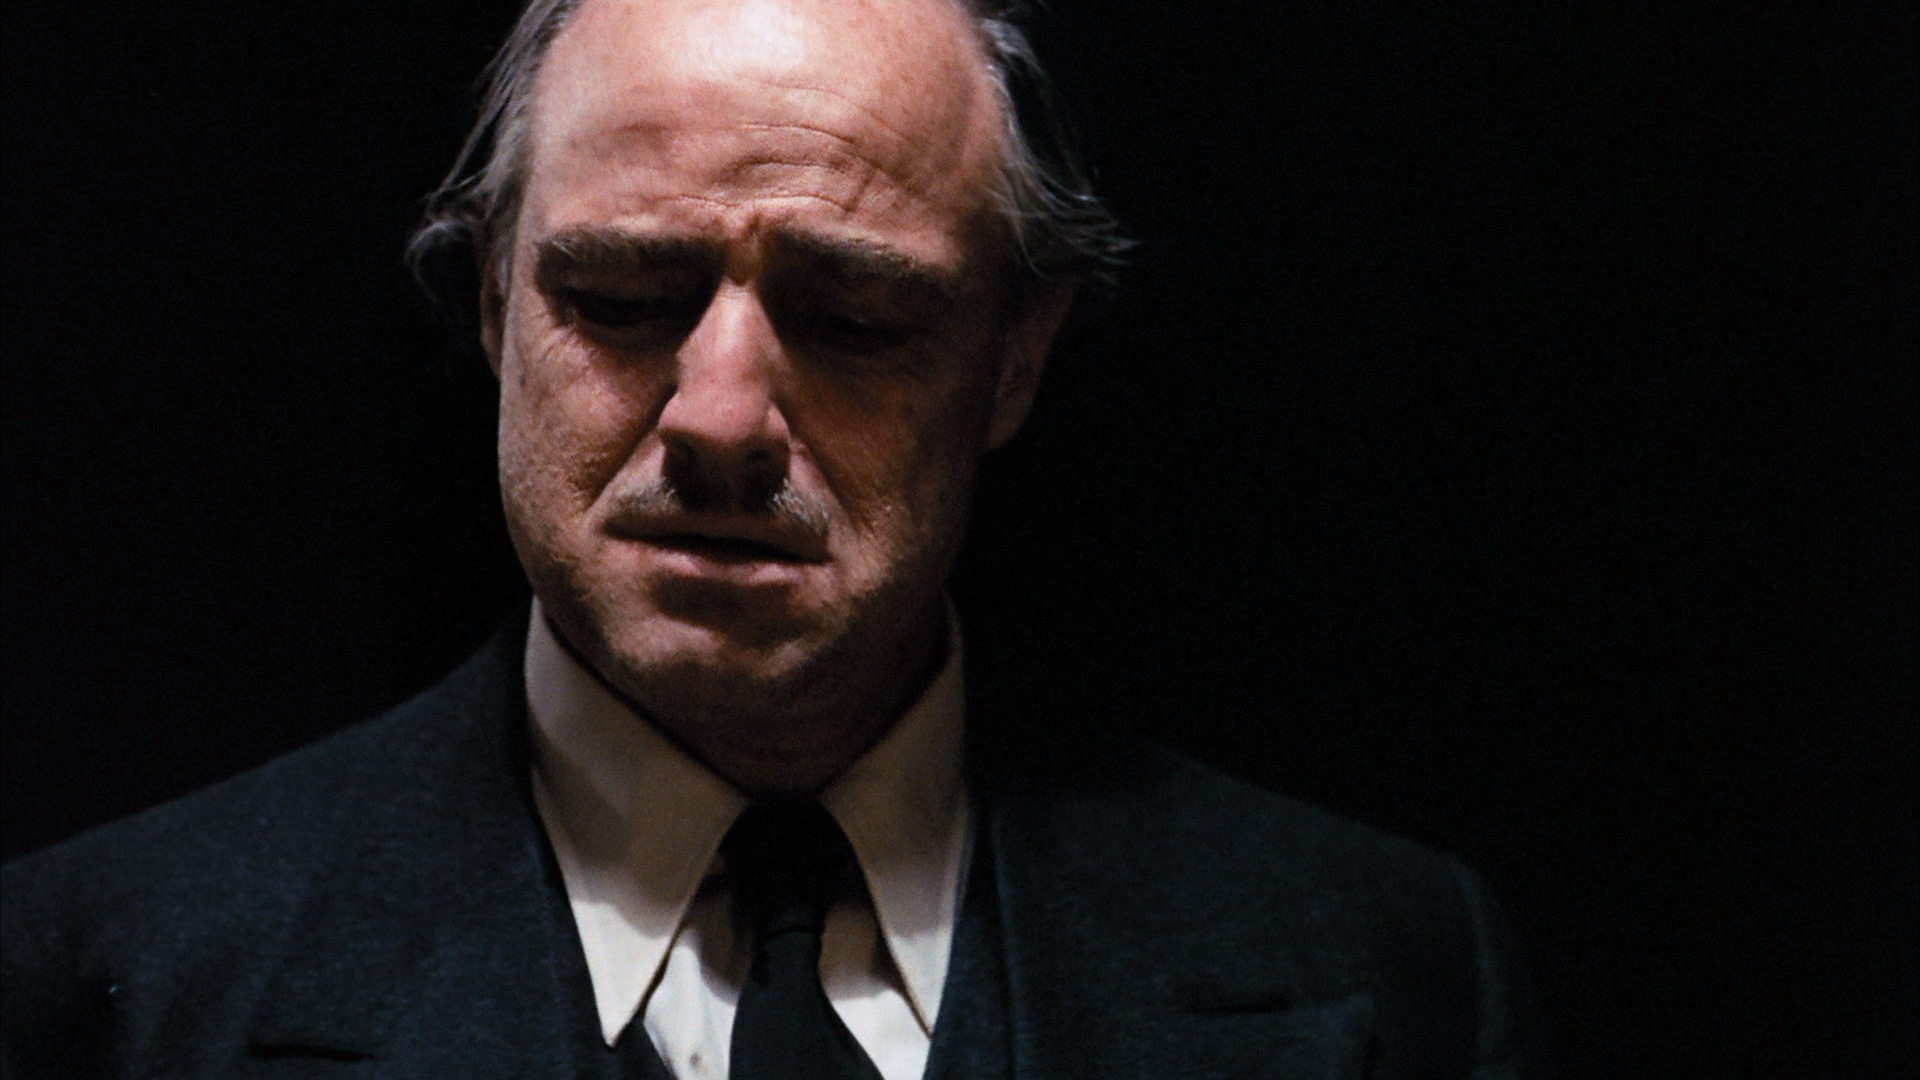 Res: 1920x1080, The Godfather Trilogy images The Godfather II wallpaper and 1024×768 The  Godfather 2 Wallpapers (46 Wallpapers)   Adorable Wallpapers   Desktop    Pinterest ...